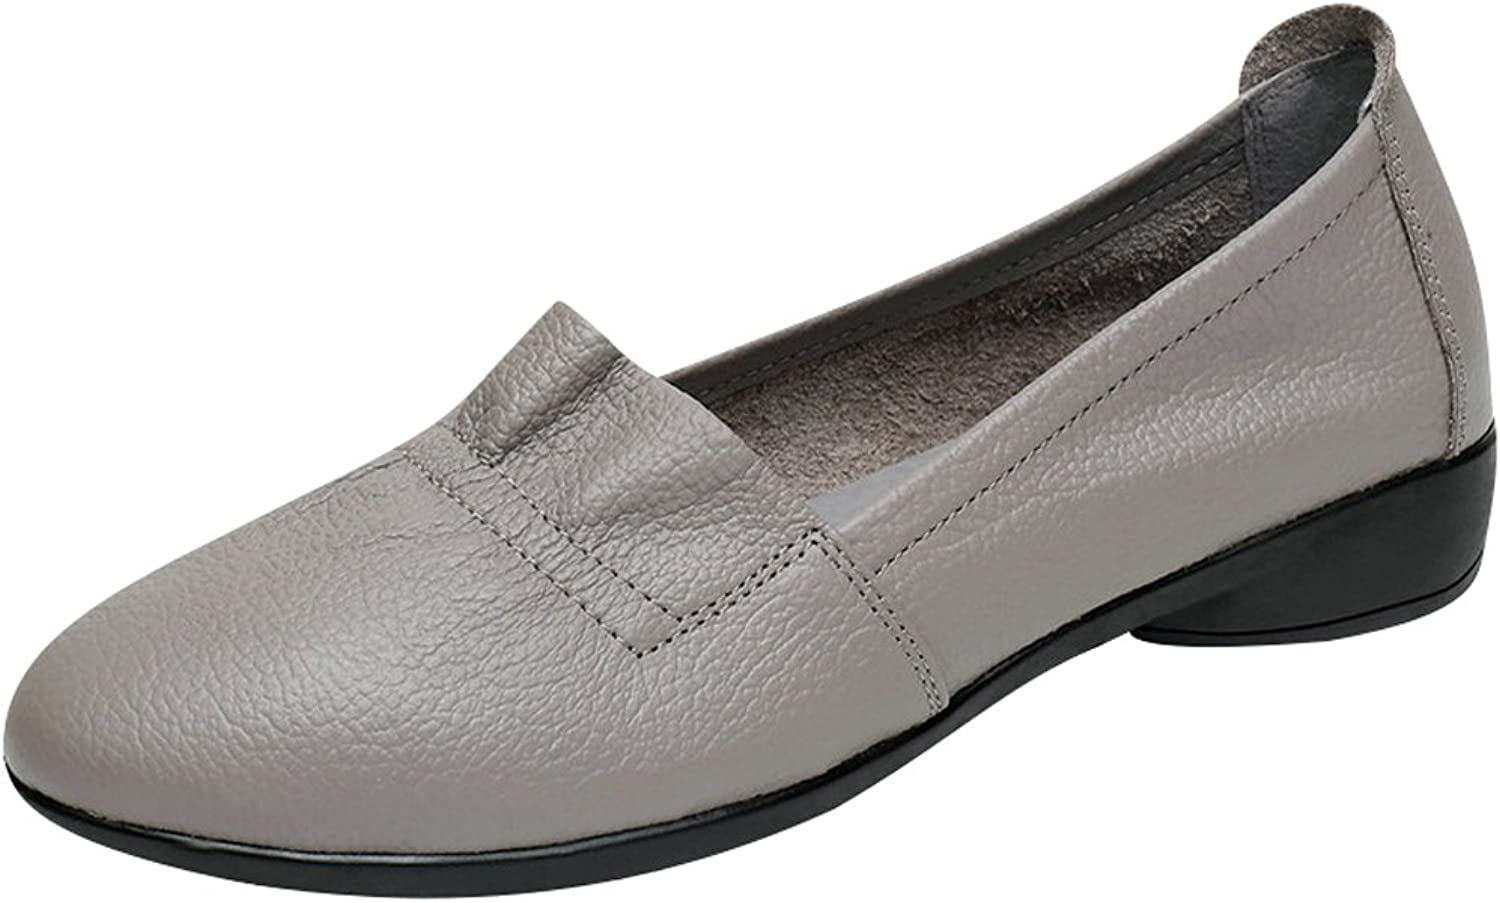 Zoulee Women's Pointed Toe Leather Driving Moccasins Flats shoes Large Size